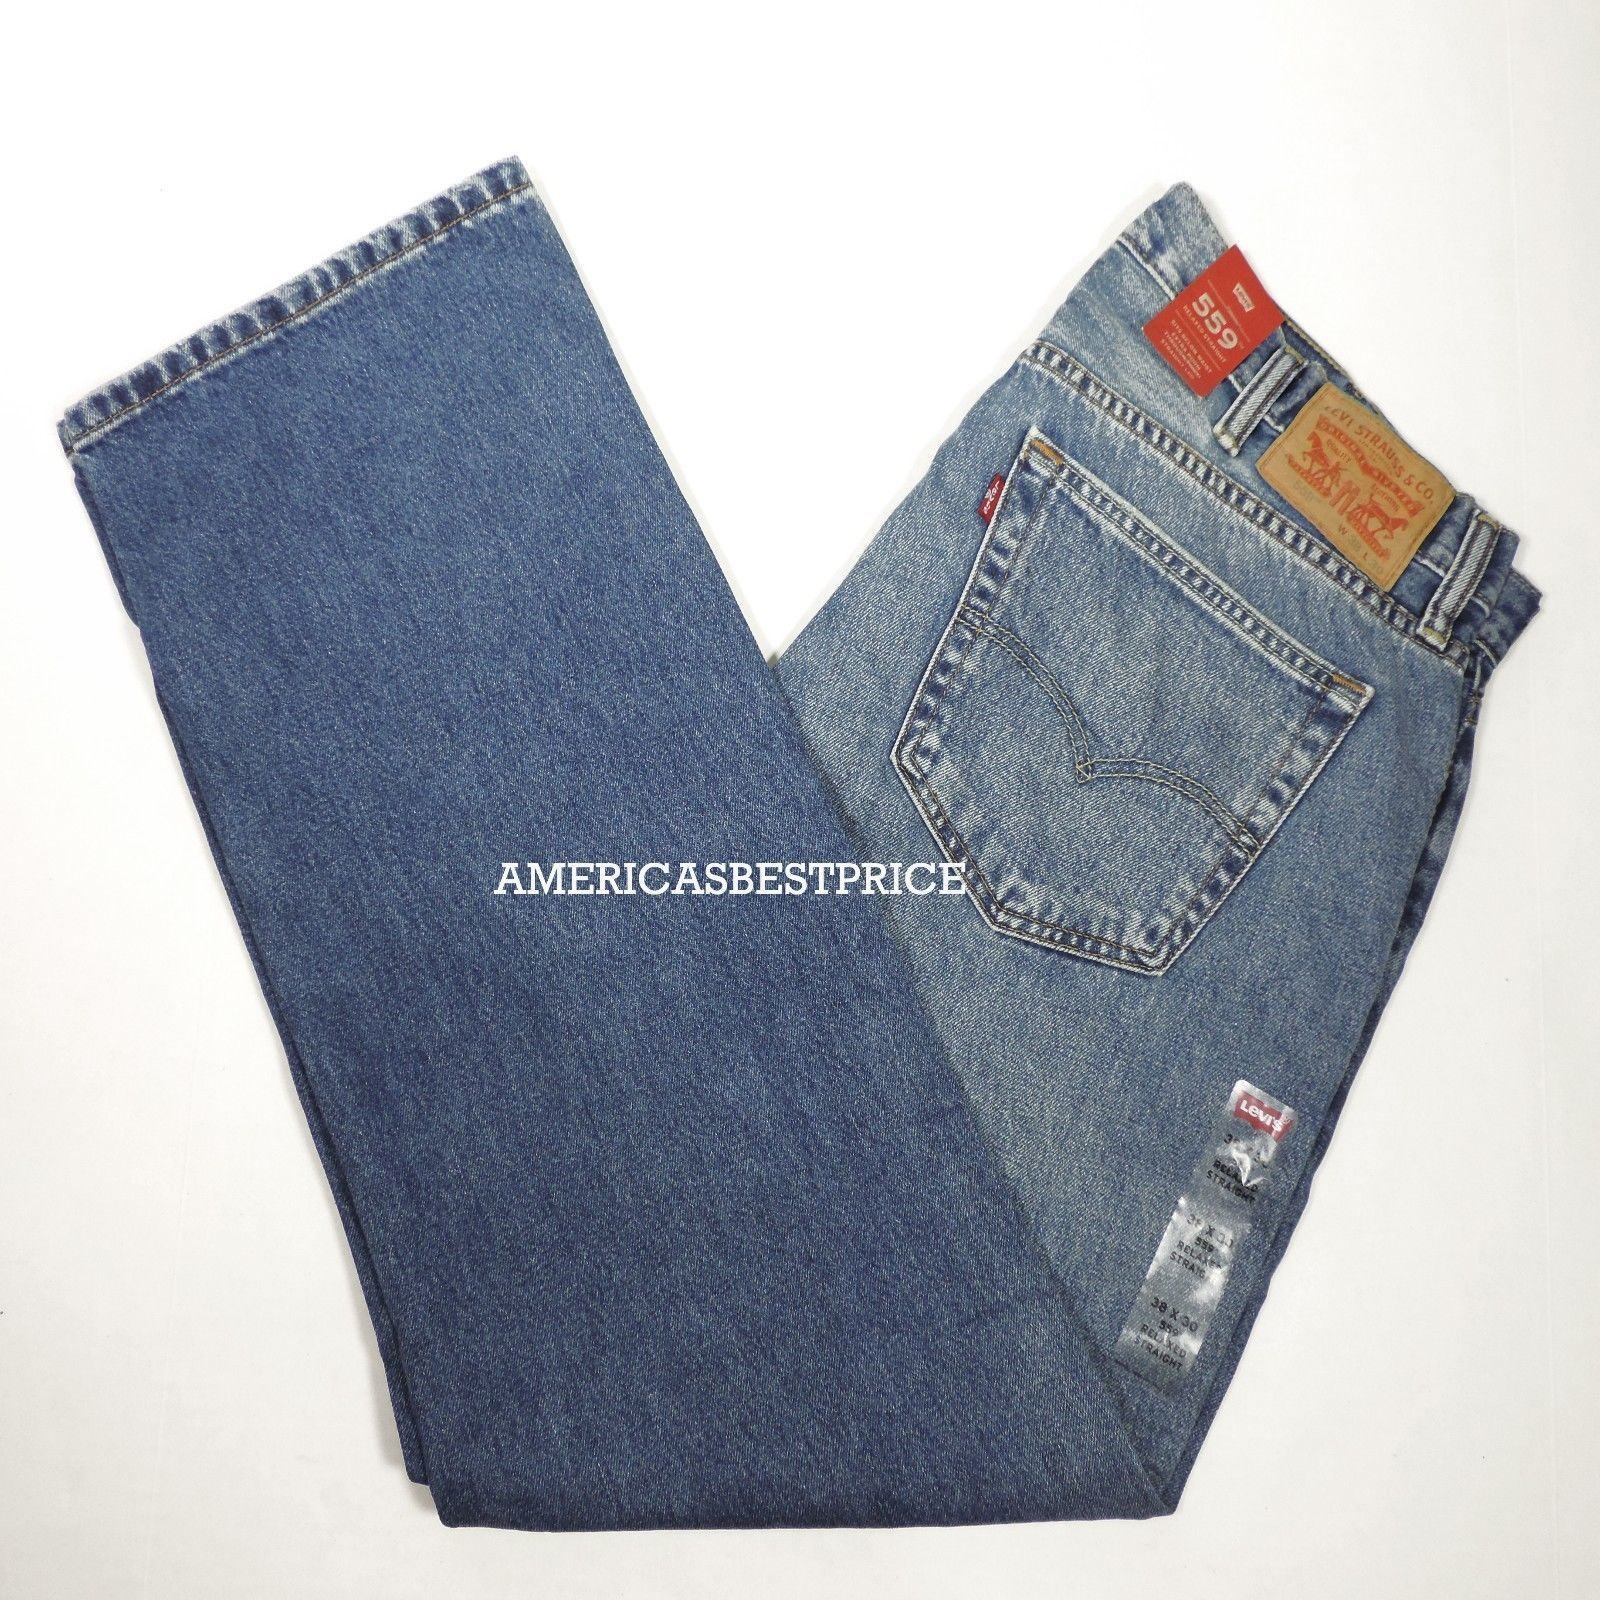 Primary image for LEVI'S 559 NEW MEN'S JEANS RELAXED STRAIGHT NWT SIT BELOW WAIST BLUE SIZE 38 42